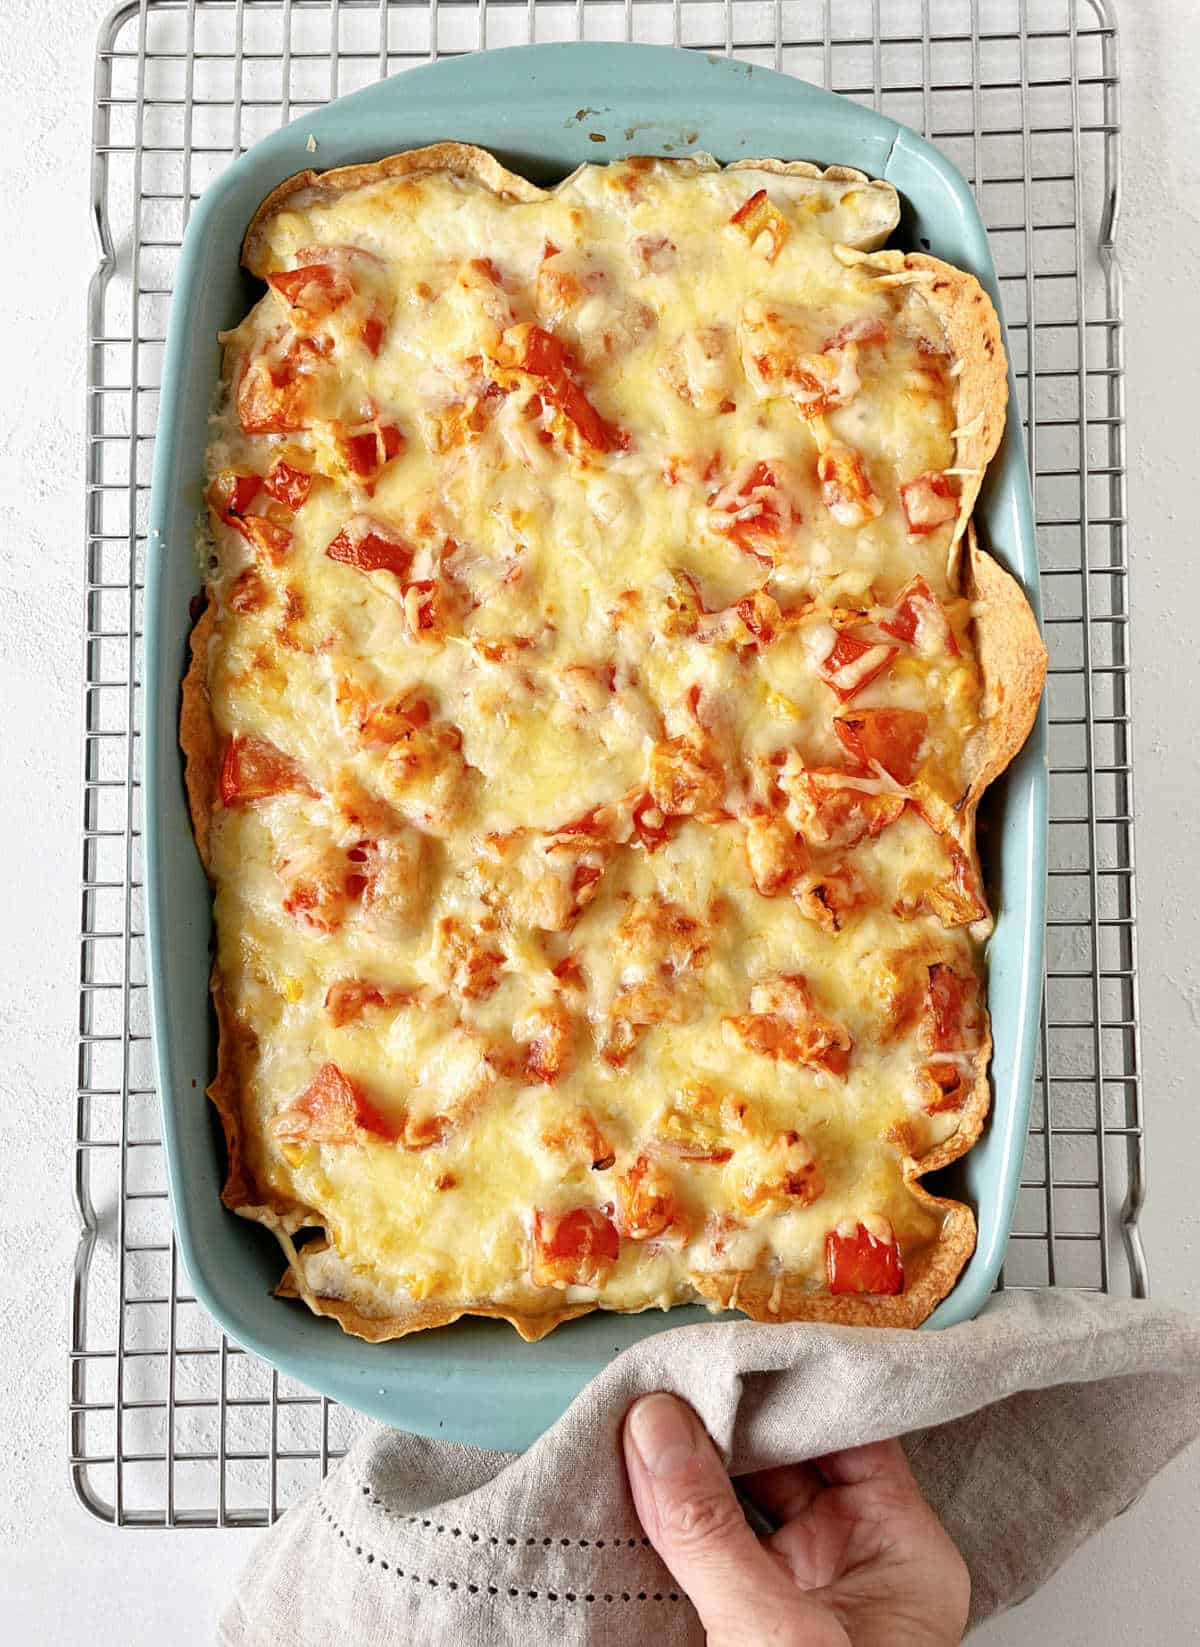 Baked cheese and tomato topped casserole in blue dish on wire rack